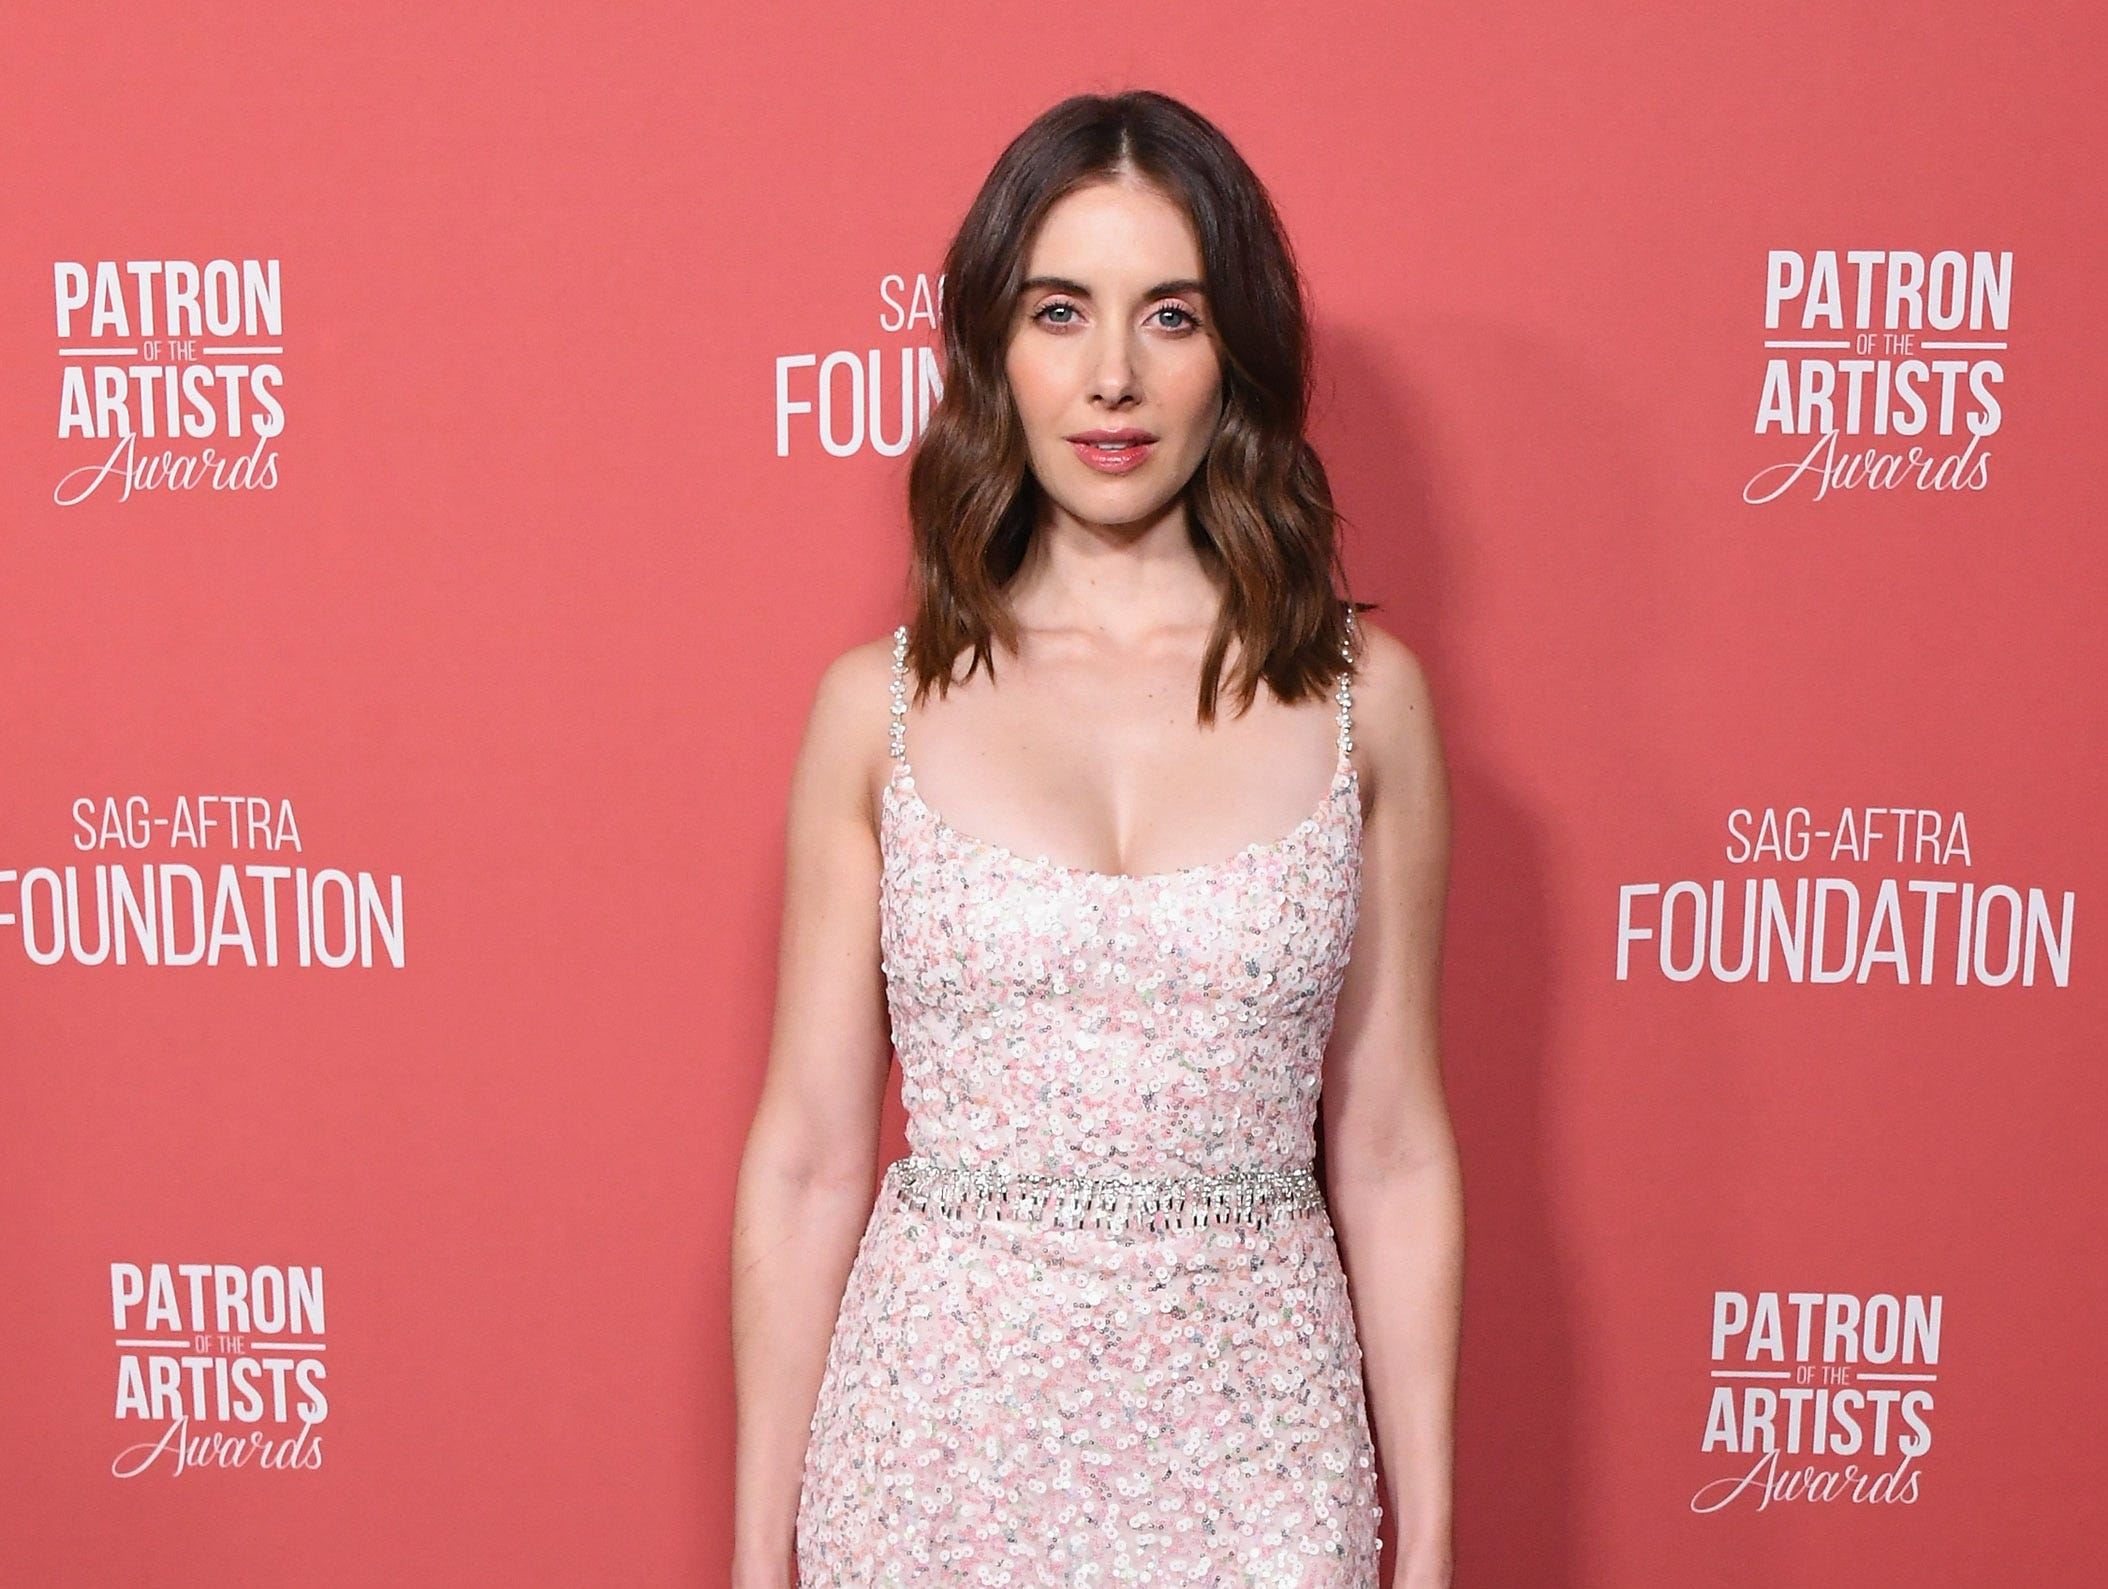 BEVERLY HILLS, CA - NOVEMBER 08:  Alison Brie attends SAG-AFTRA Foundation's 3rd Annual Patron Of The Artists Awards at Wallis Annenberg Center for the Performing Arts on November 8, 2018 in Beverly Hills, California.  (Photo by Jon Kopaloff/FilmMagic) ORG XMIT: 775233471 ORIG FILE ID: 1059469588